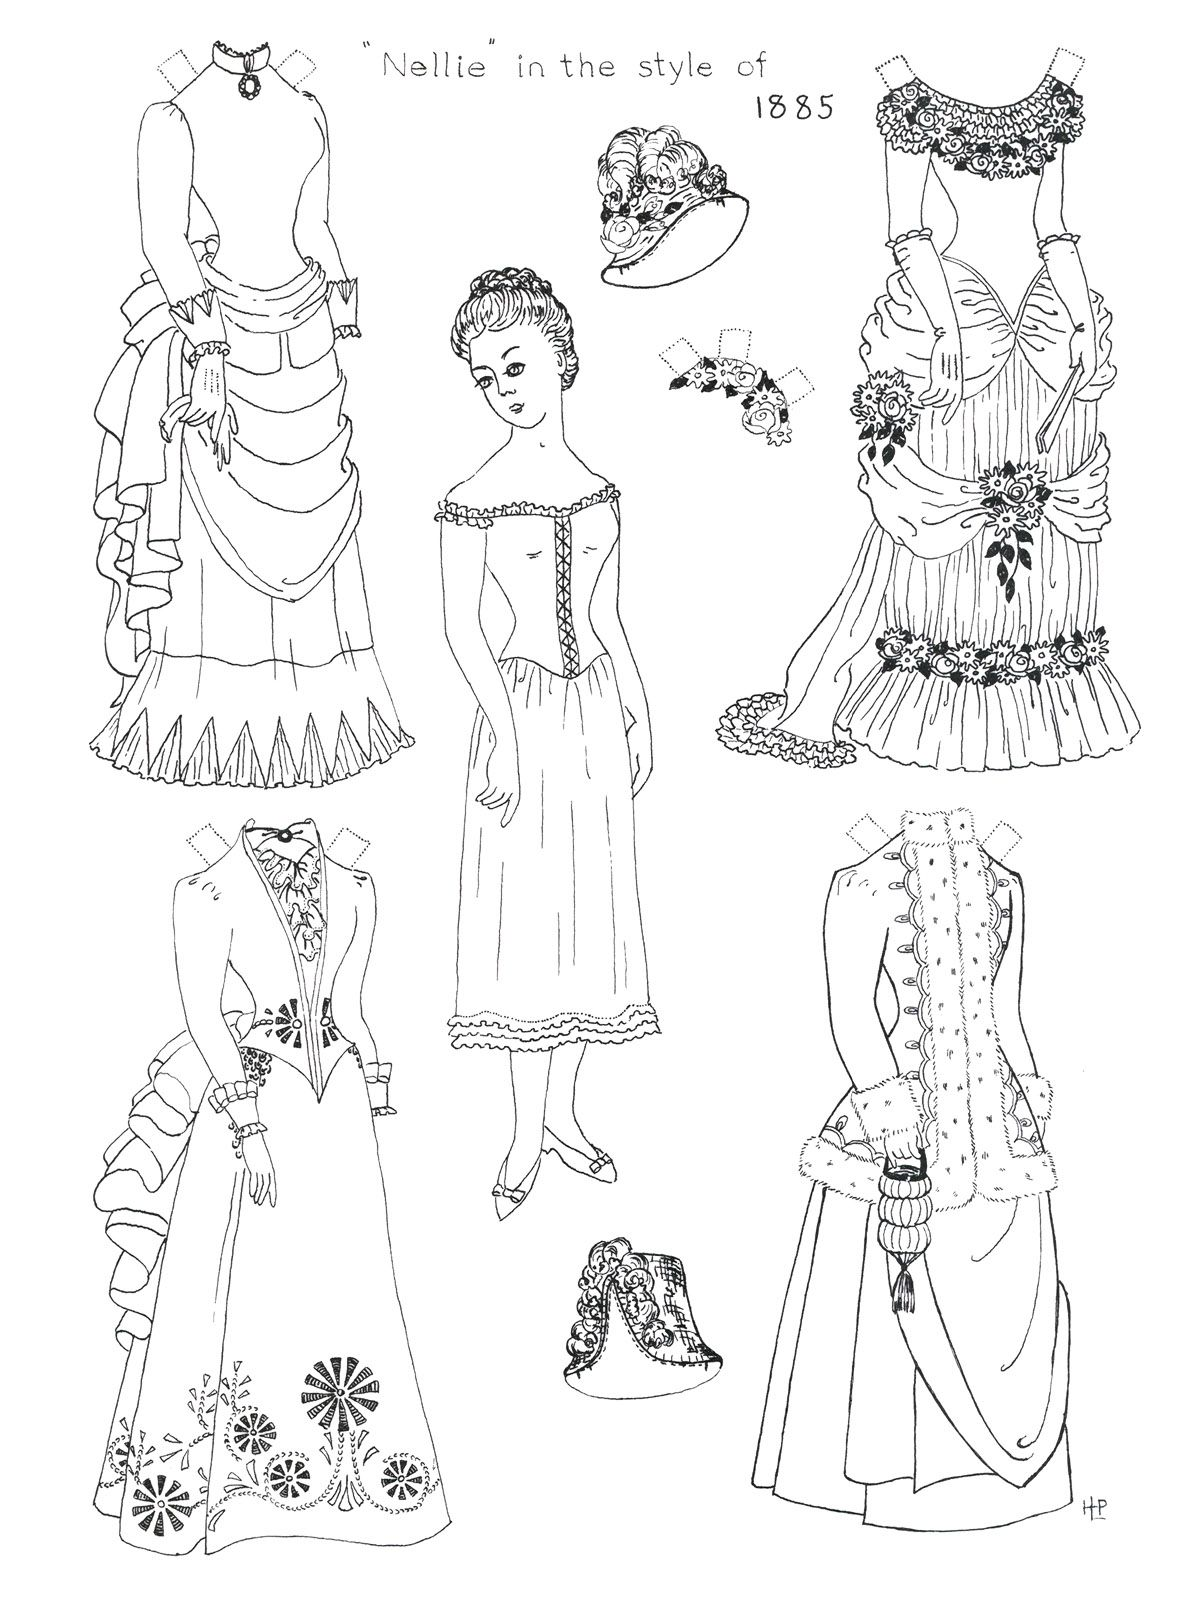 paper doll dress up template the 25 best paper doll template ideas on pinterest doll template paper dress up